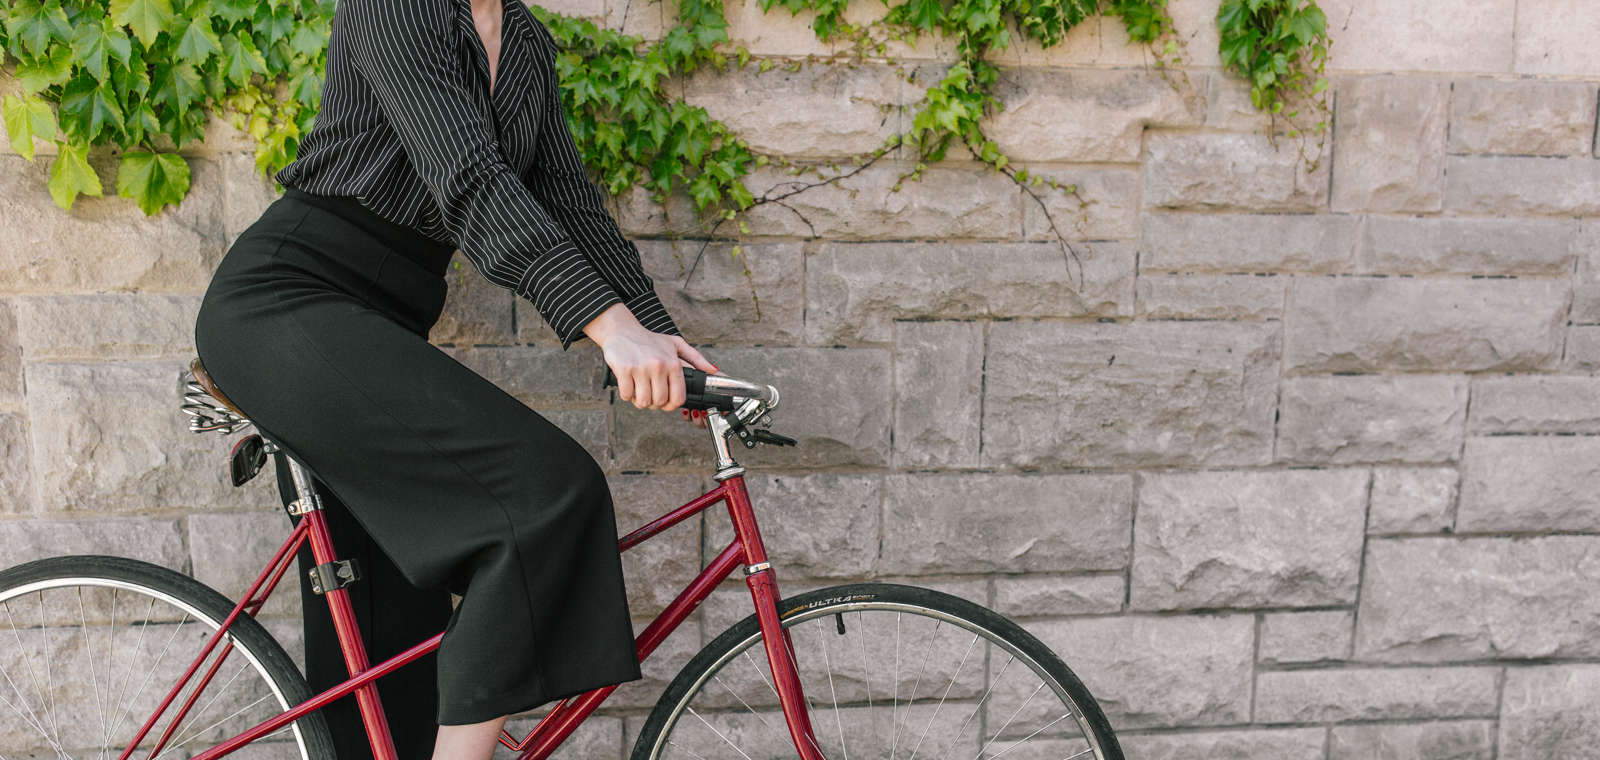 Woman on Bike by Hotel, shot by photographer Wesley Taylor